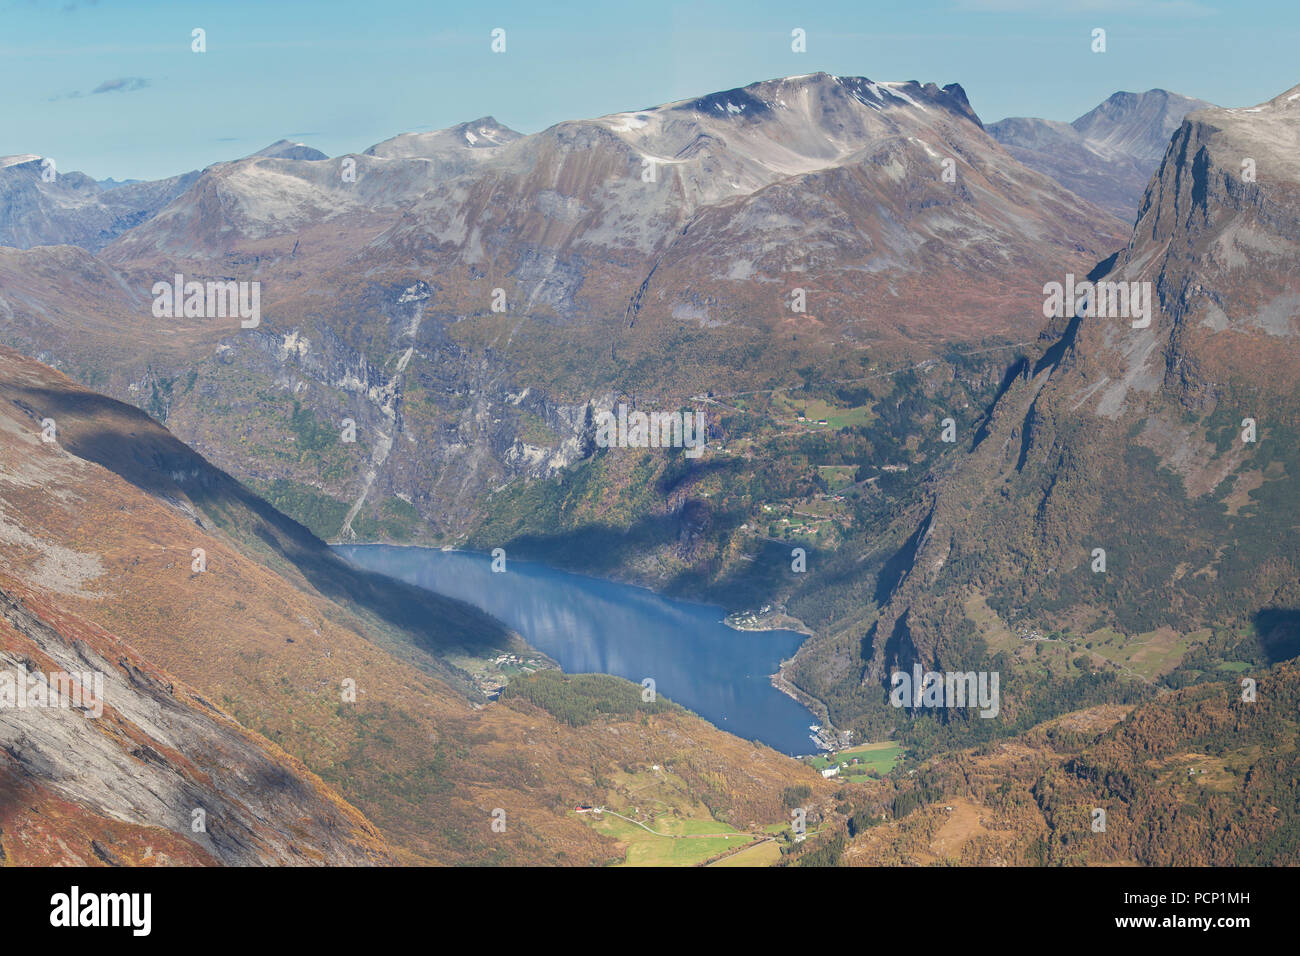 The Geiragerfjord from the Dalsnibba Mountain Plateau, Geiranger, Norway. - Stock Image